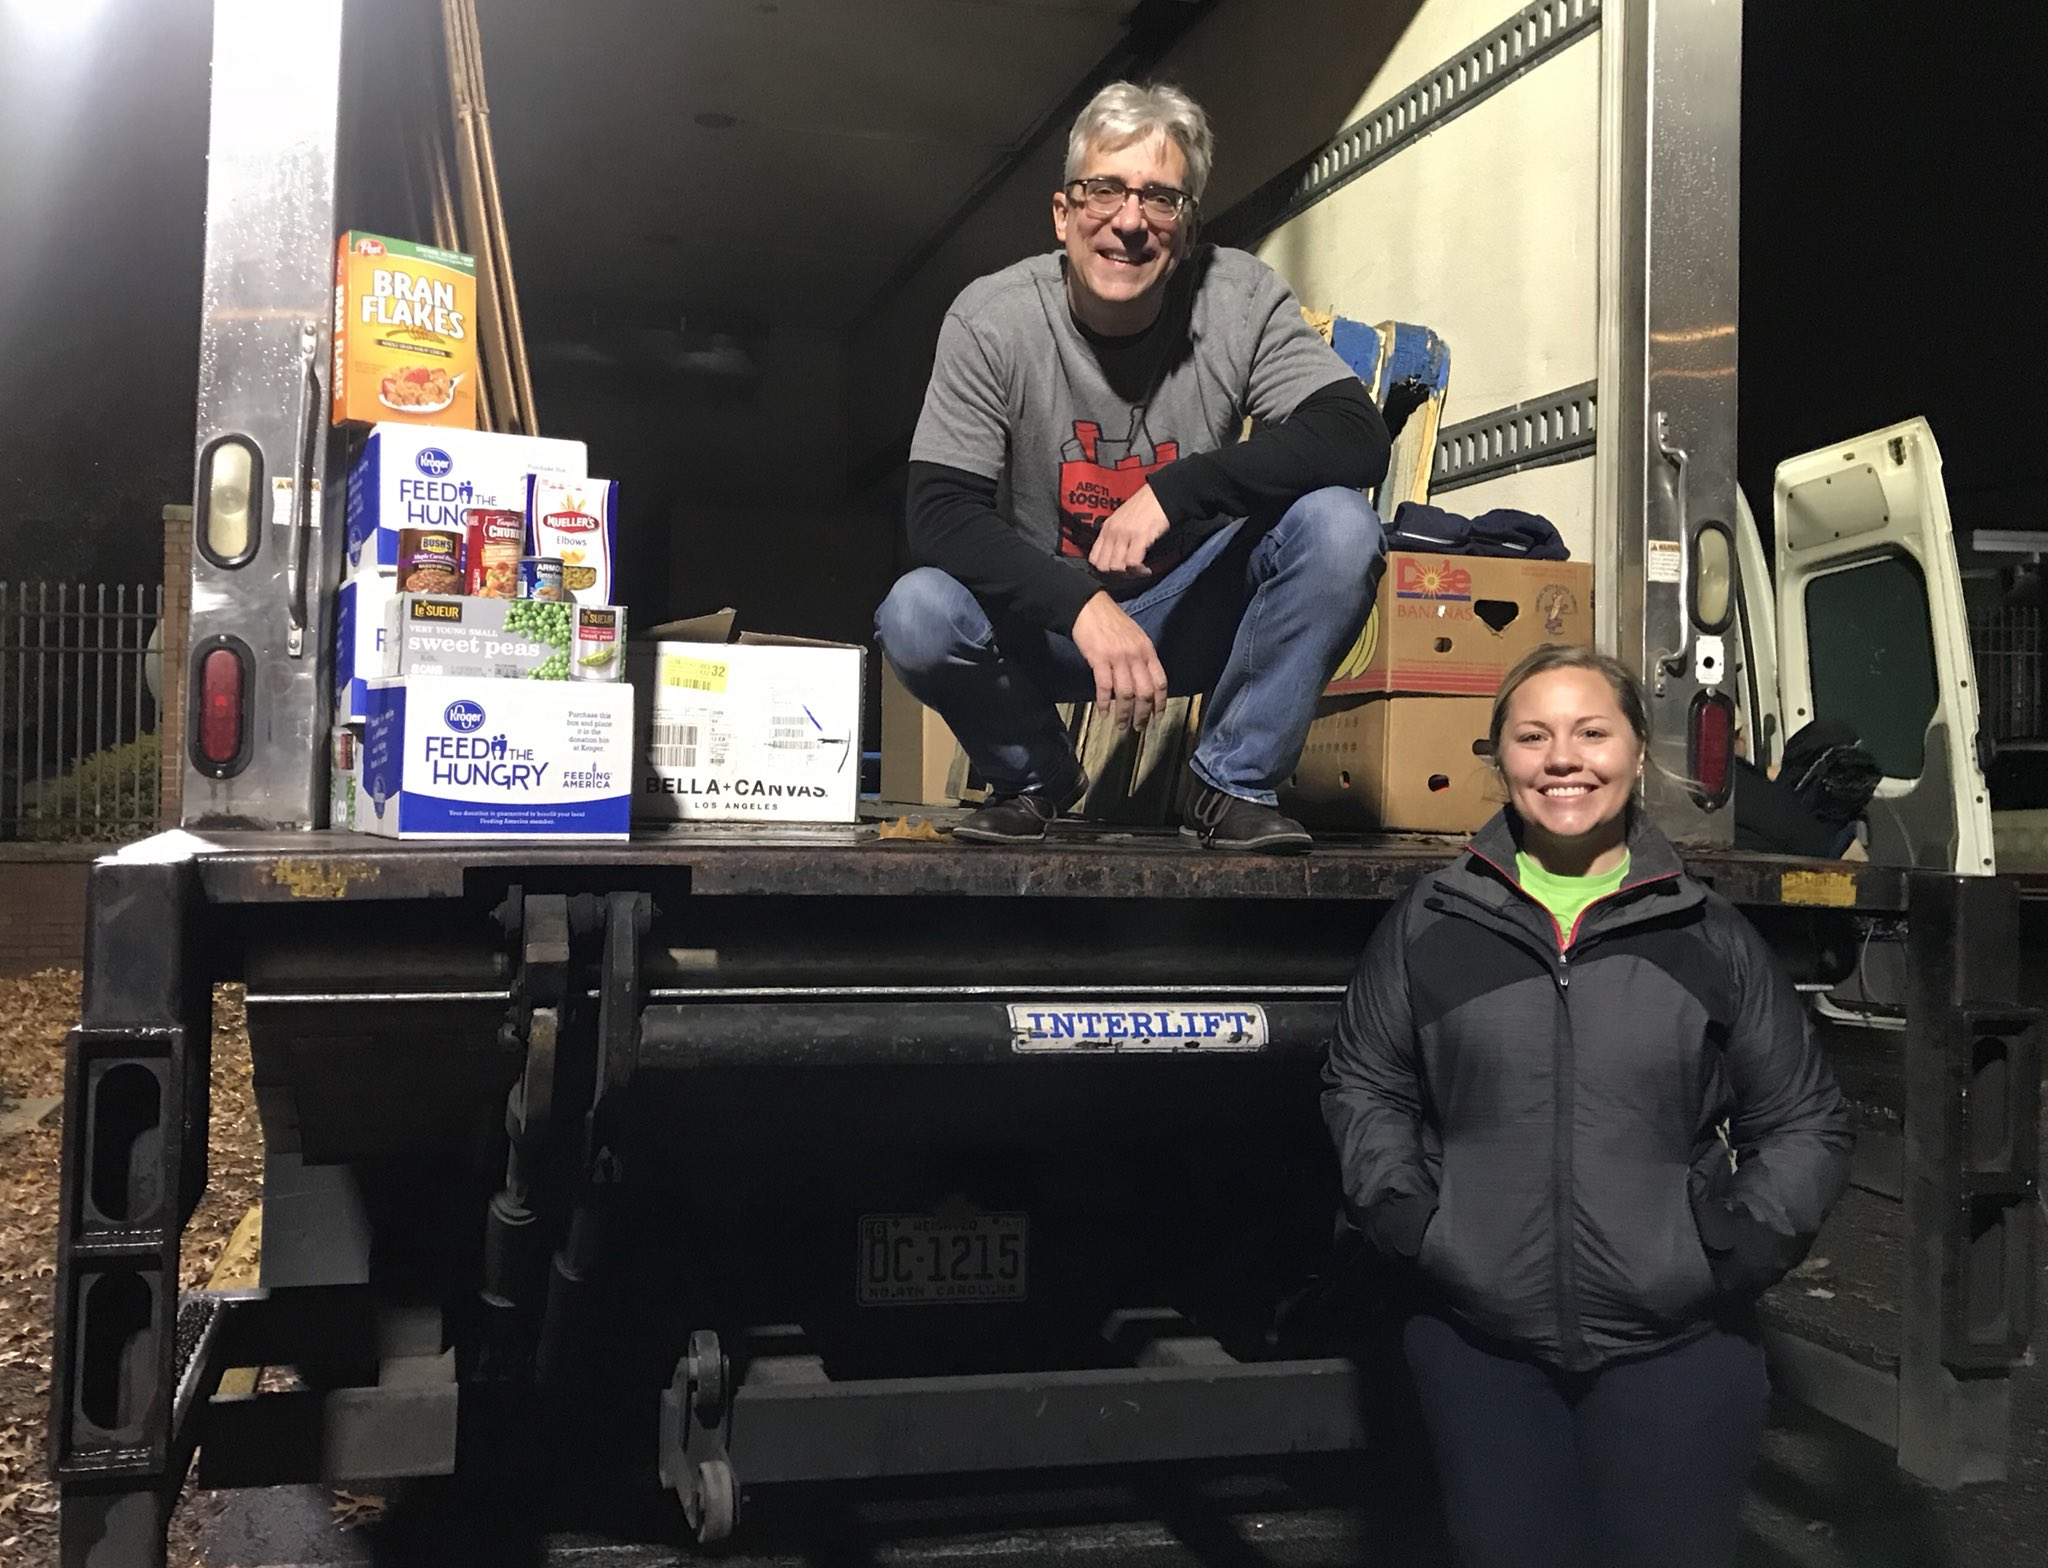 <div class='meta'><div class='origin-logo' data-origin='none'></div><span class='caption-text' data-credit=''>Our tiny givers are a BIG help. Remember, one dollar provides five meals! ABC11 Together Food Drive in Durham</span></div>